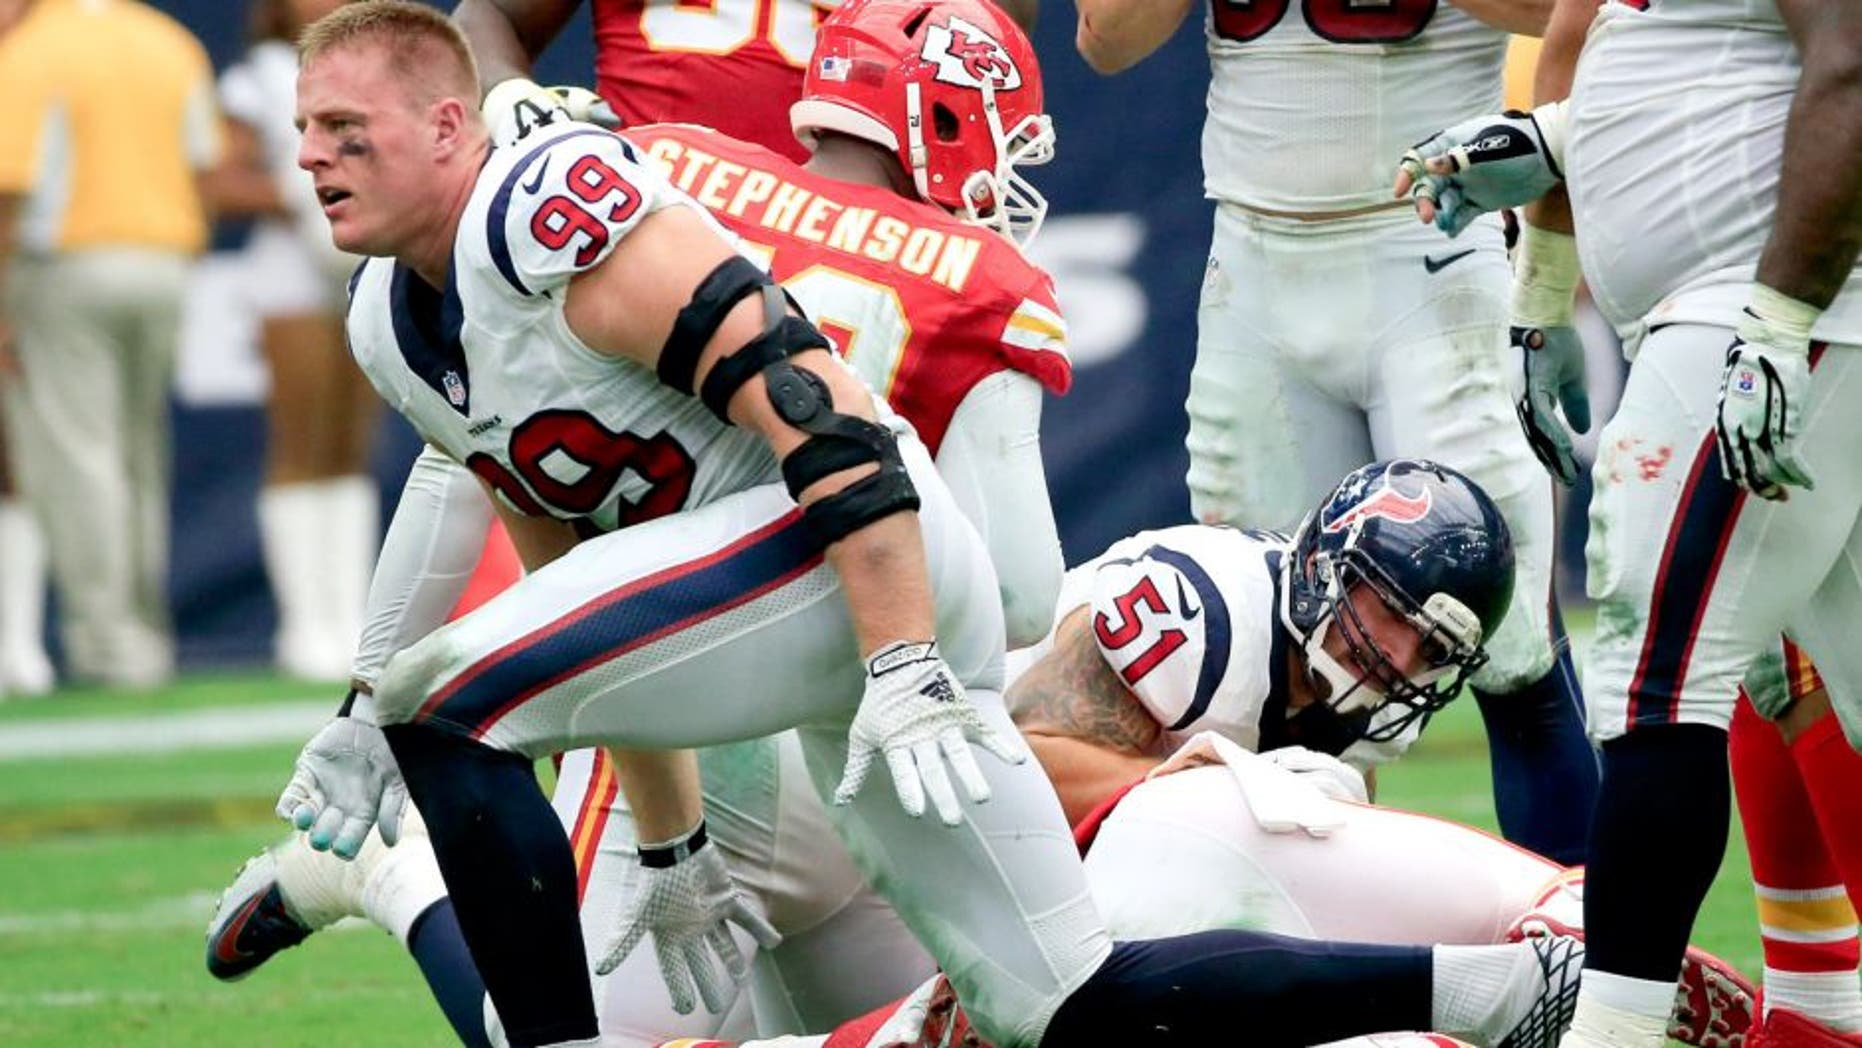 Sep 13, 2015; Houston, TX, USA; Houston Texans defensive end J.J. Watt (99) reacts after making a sack during the first half against the Kansas City Chiefs at NRG Stadium. Mandatory Credit: Kevin Jairaj-USA TODAY Sports